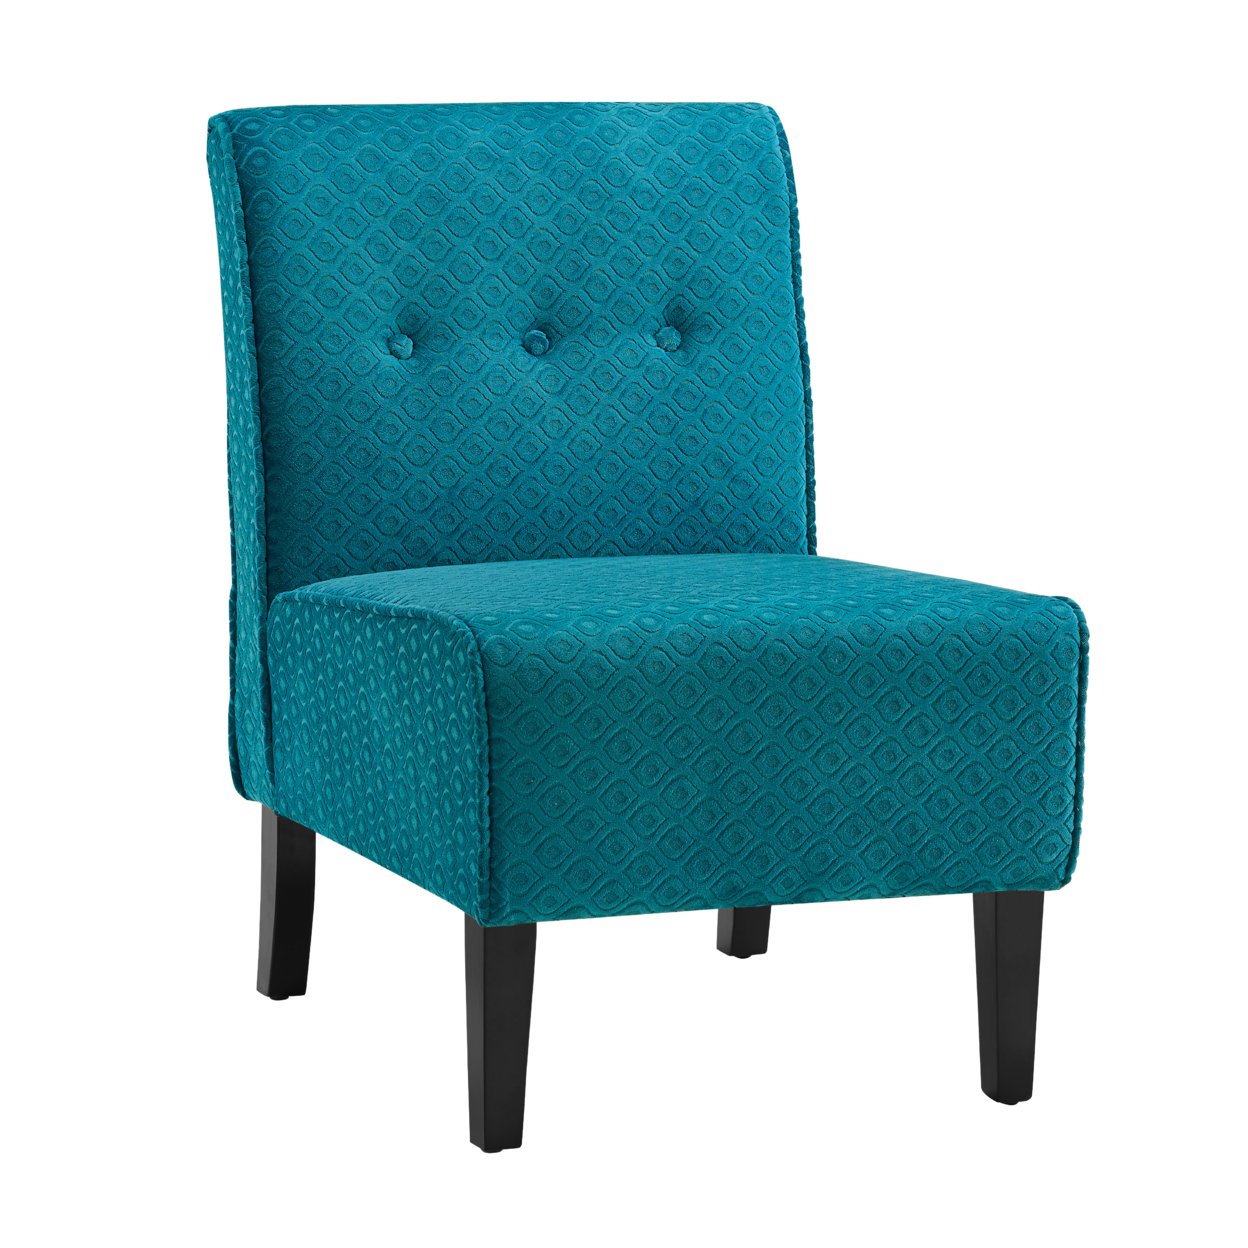 Coco Teal Blue Accent Chair anso contemporary teal color fabric accent chair